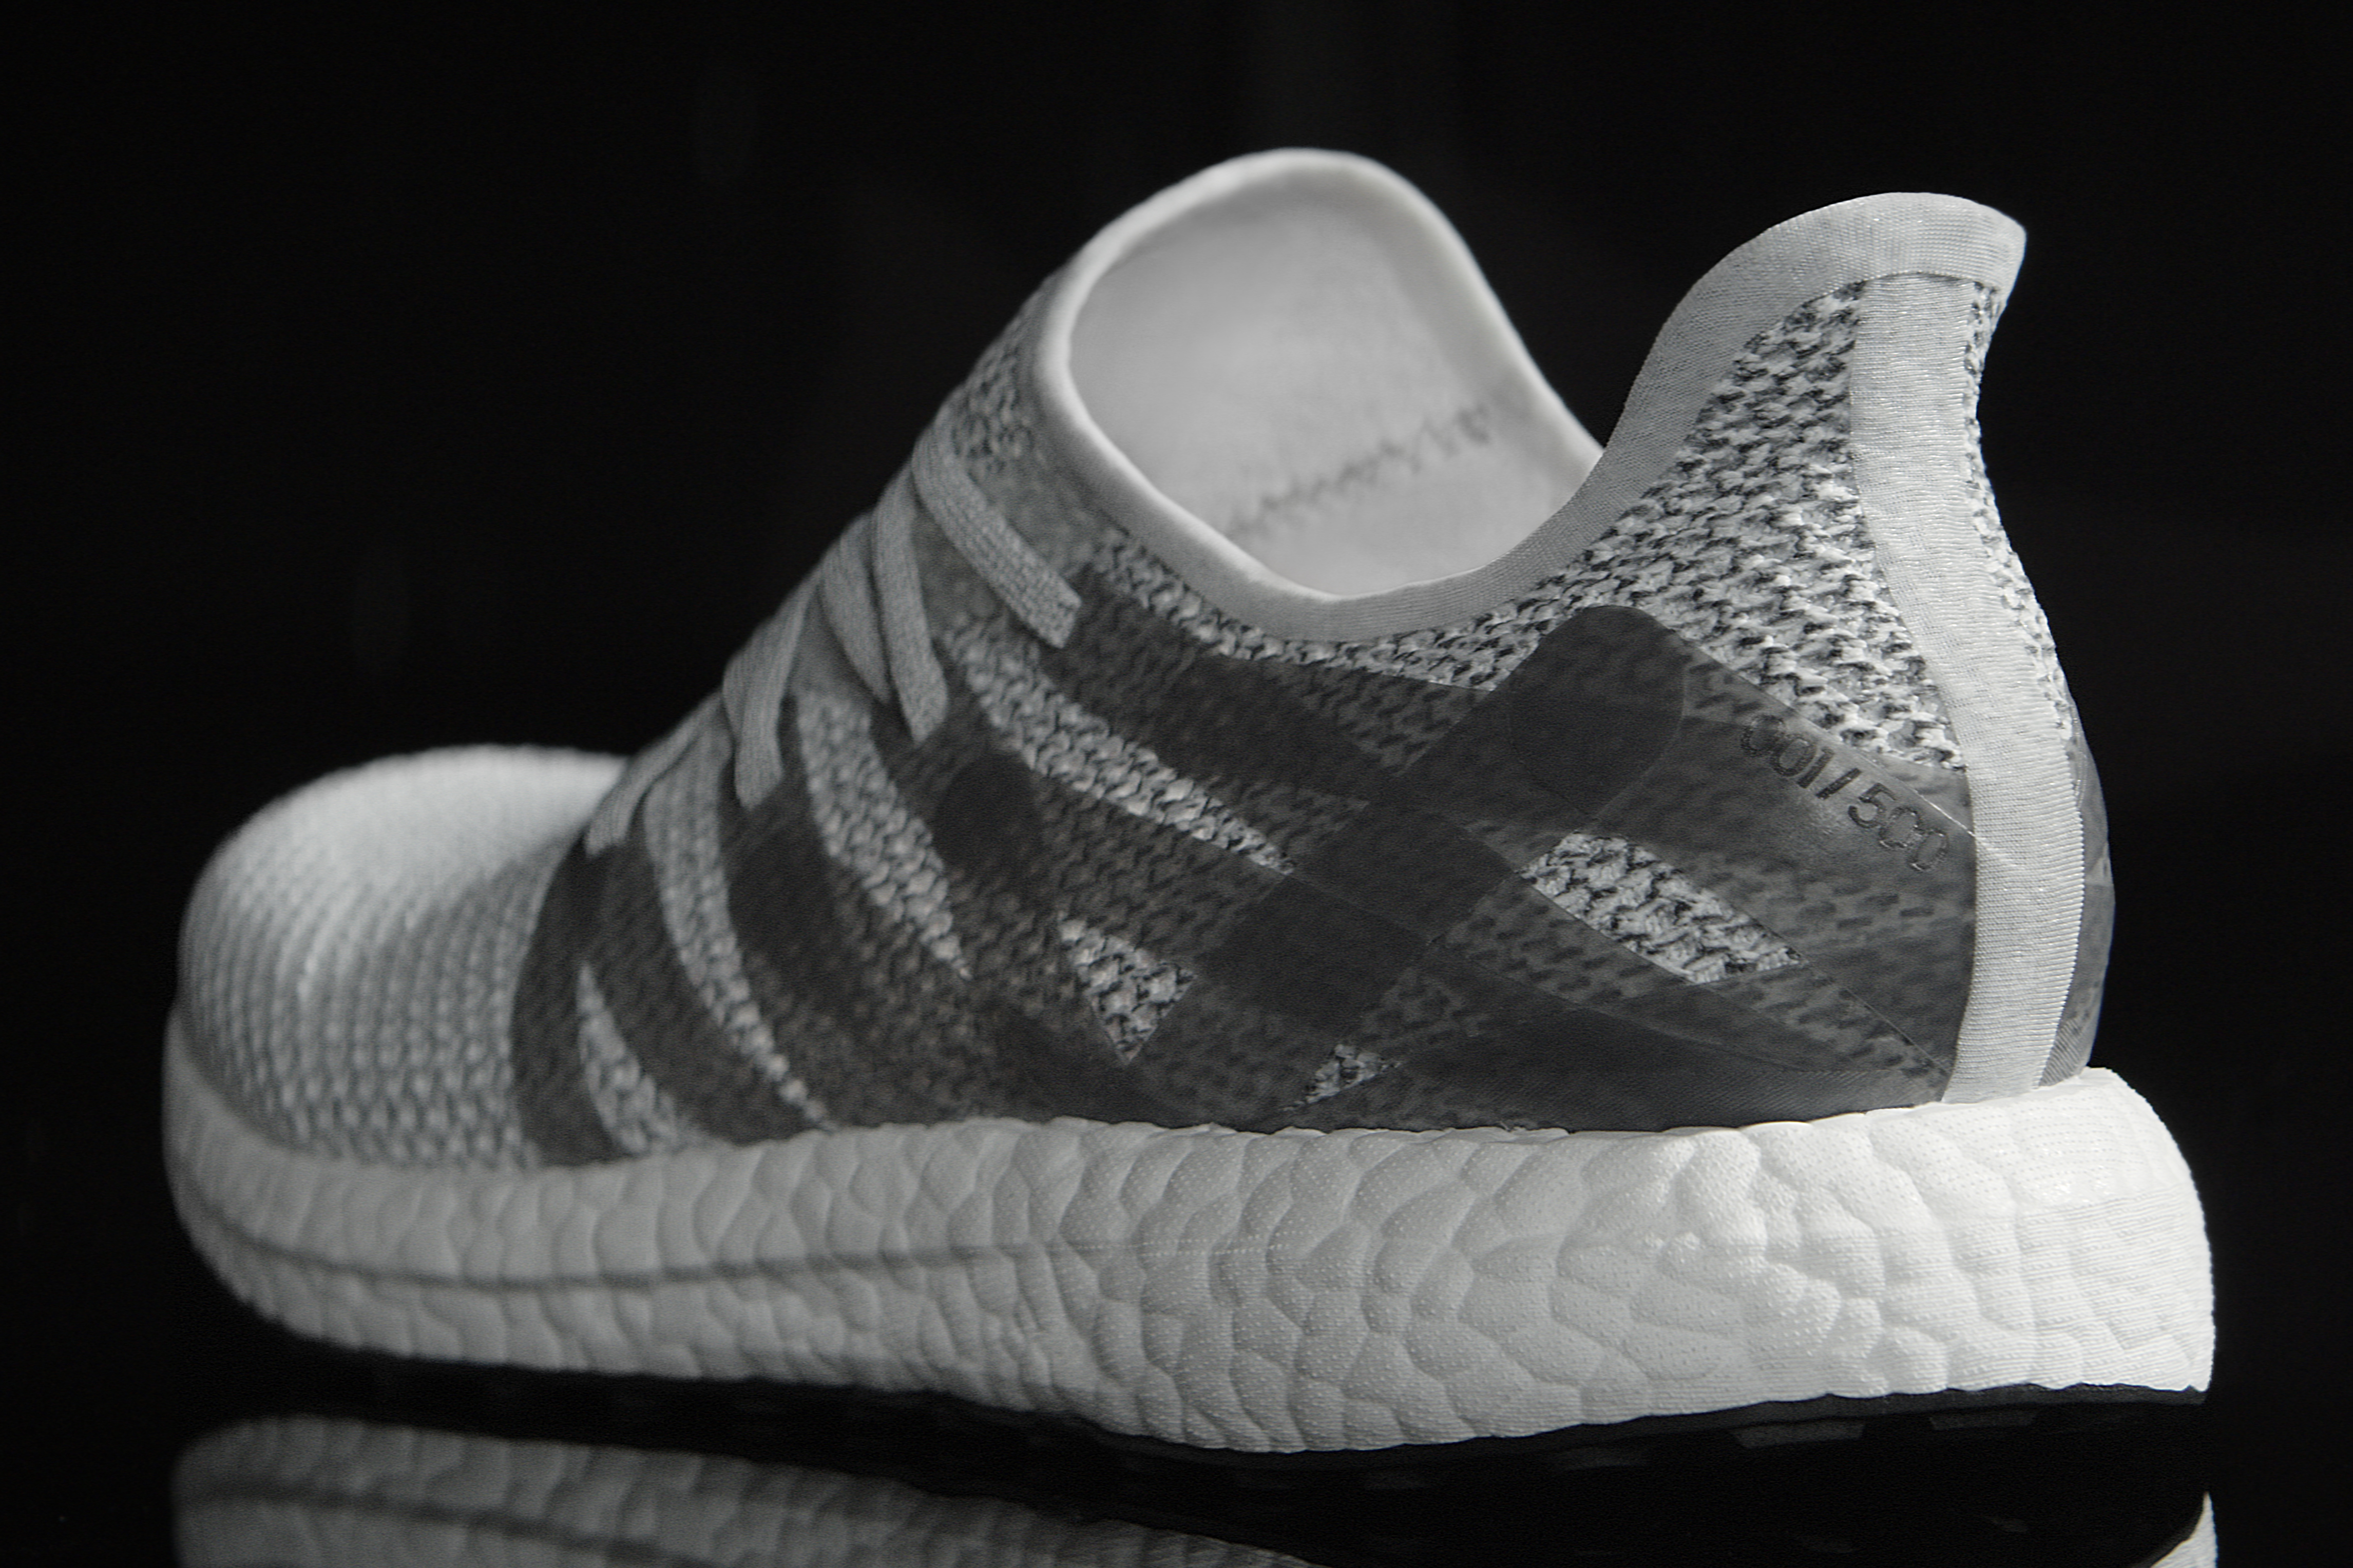 fc2d80bd5 adidas shoe commercial buy online adidas shoes